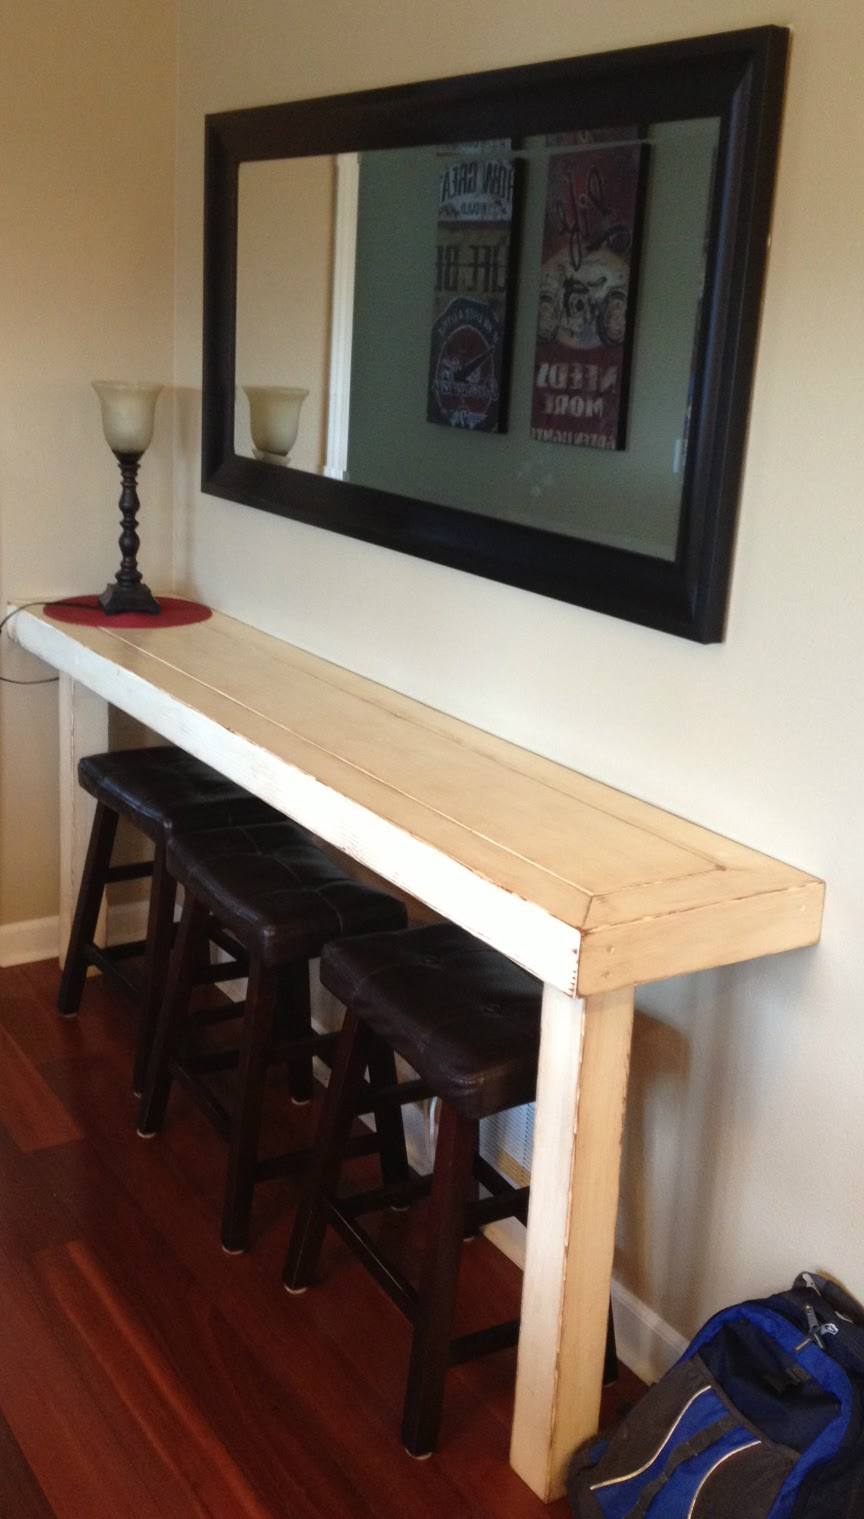 8ft Farm Table Dad Built This: Farmhouse Snack Bar - Buffet